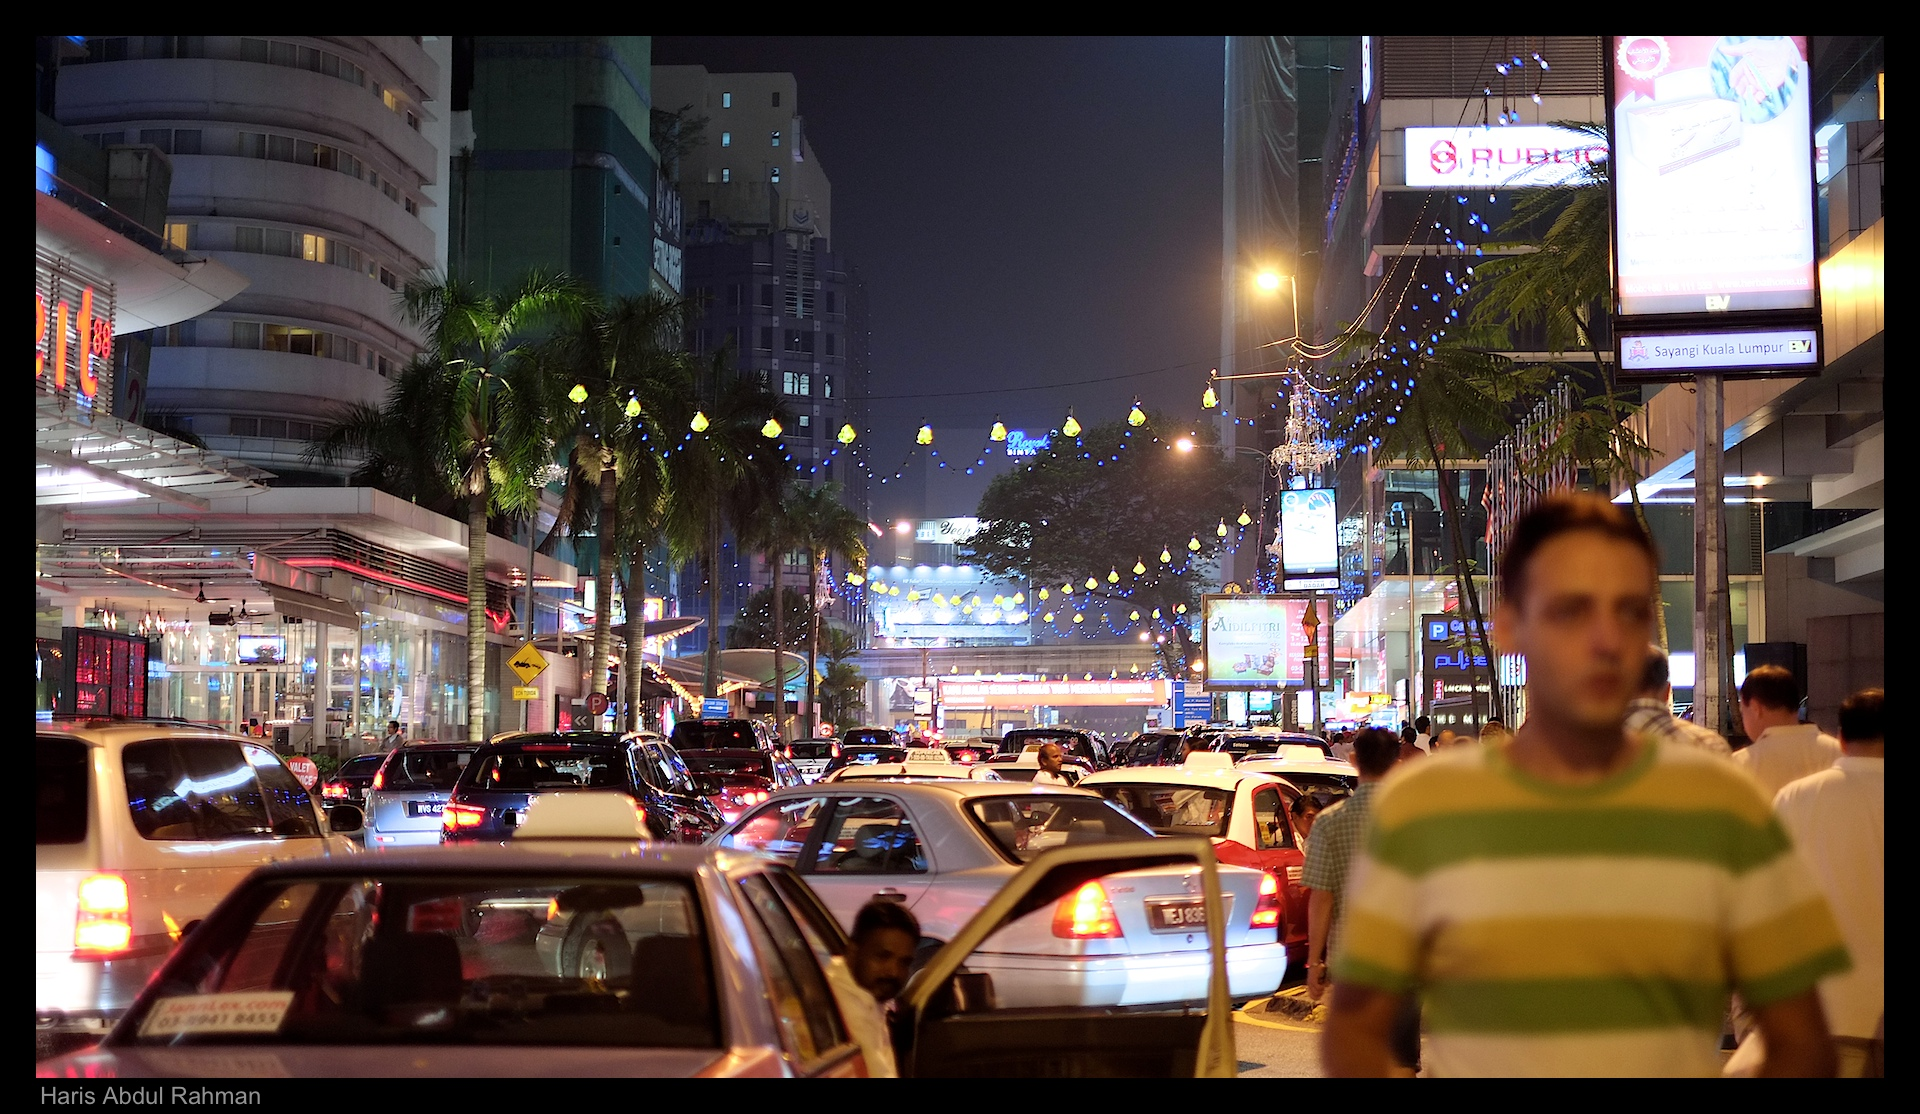 At 10 pm, the road around Bukit Bintang was still a pain to navigate